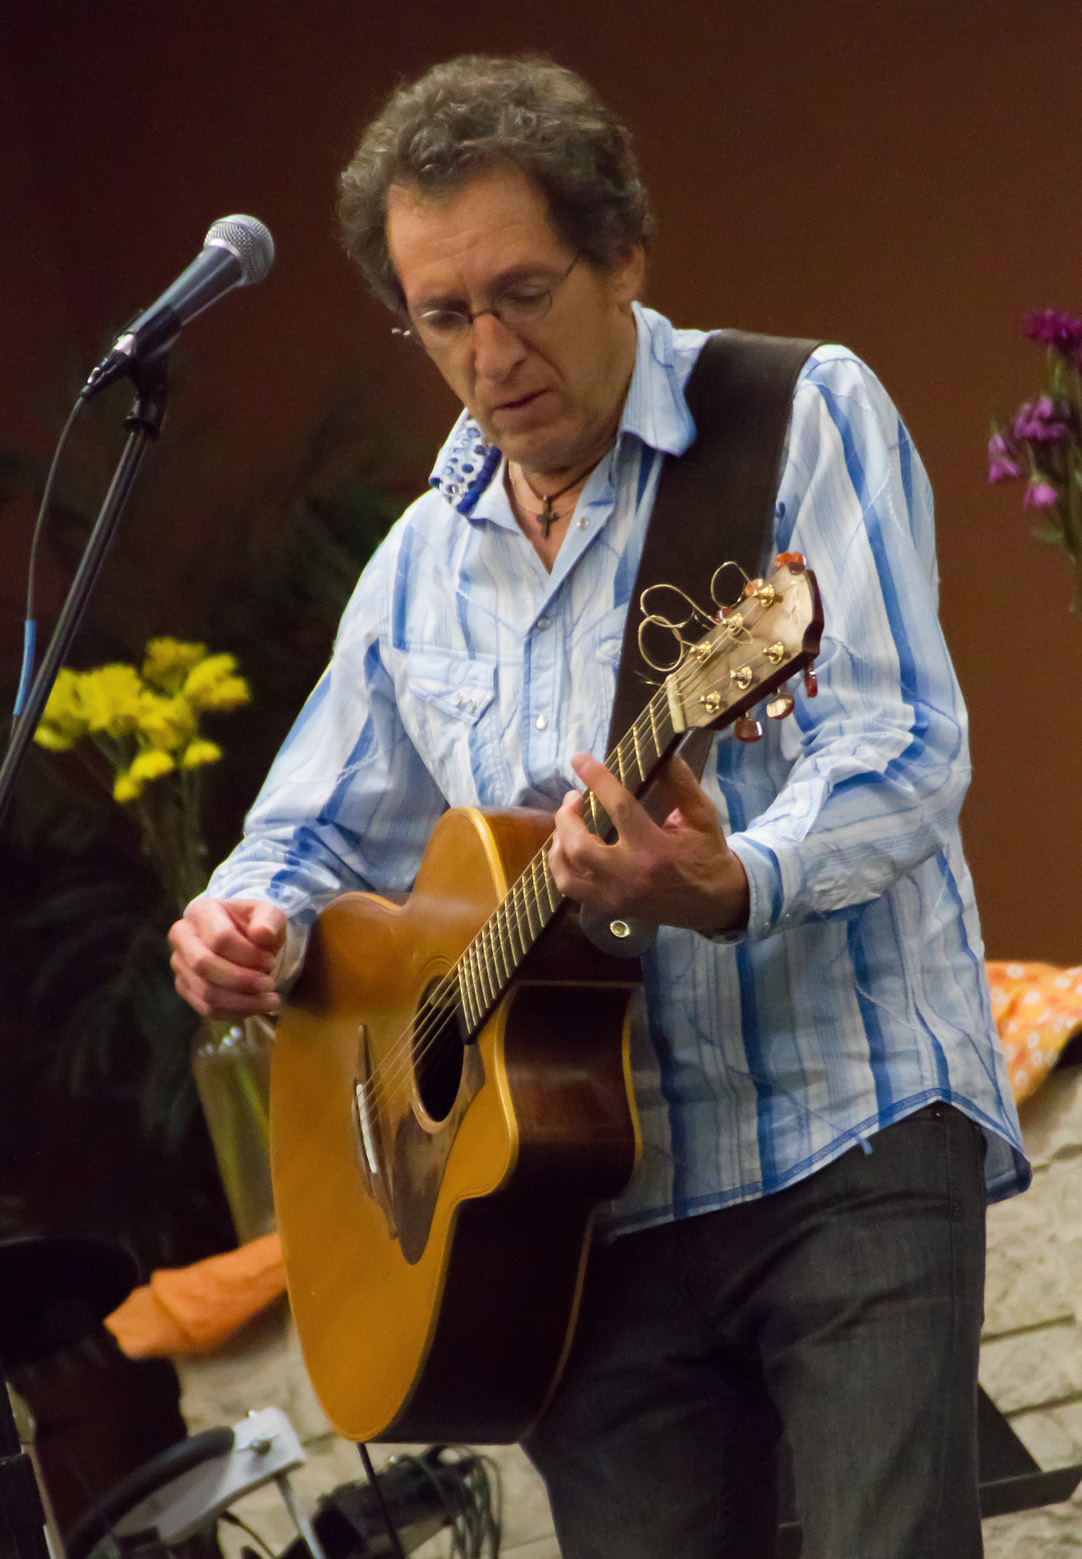 In concert May 2014 in Fremont, California